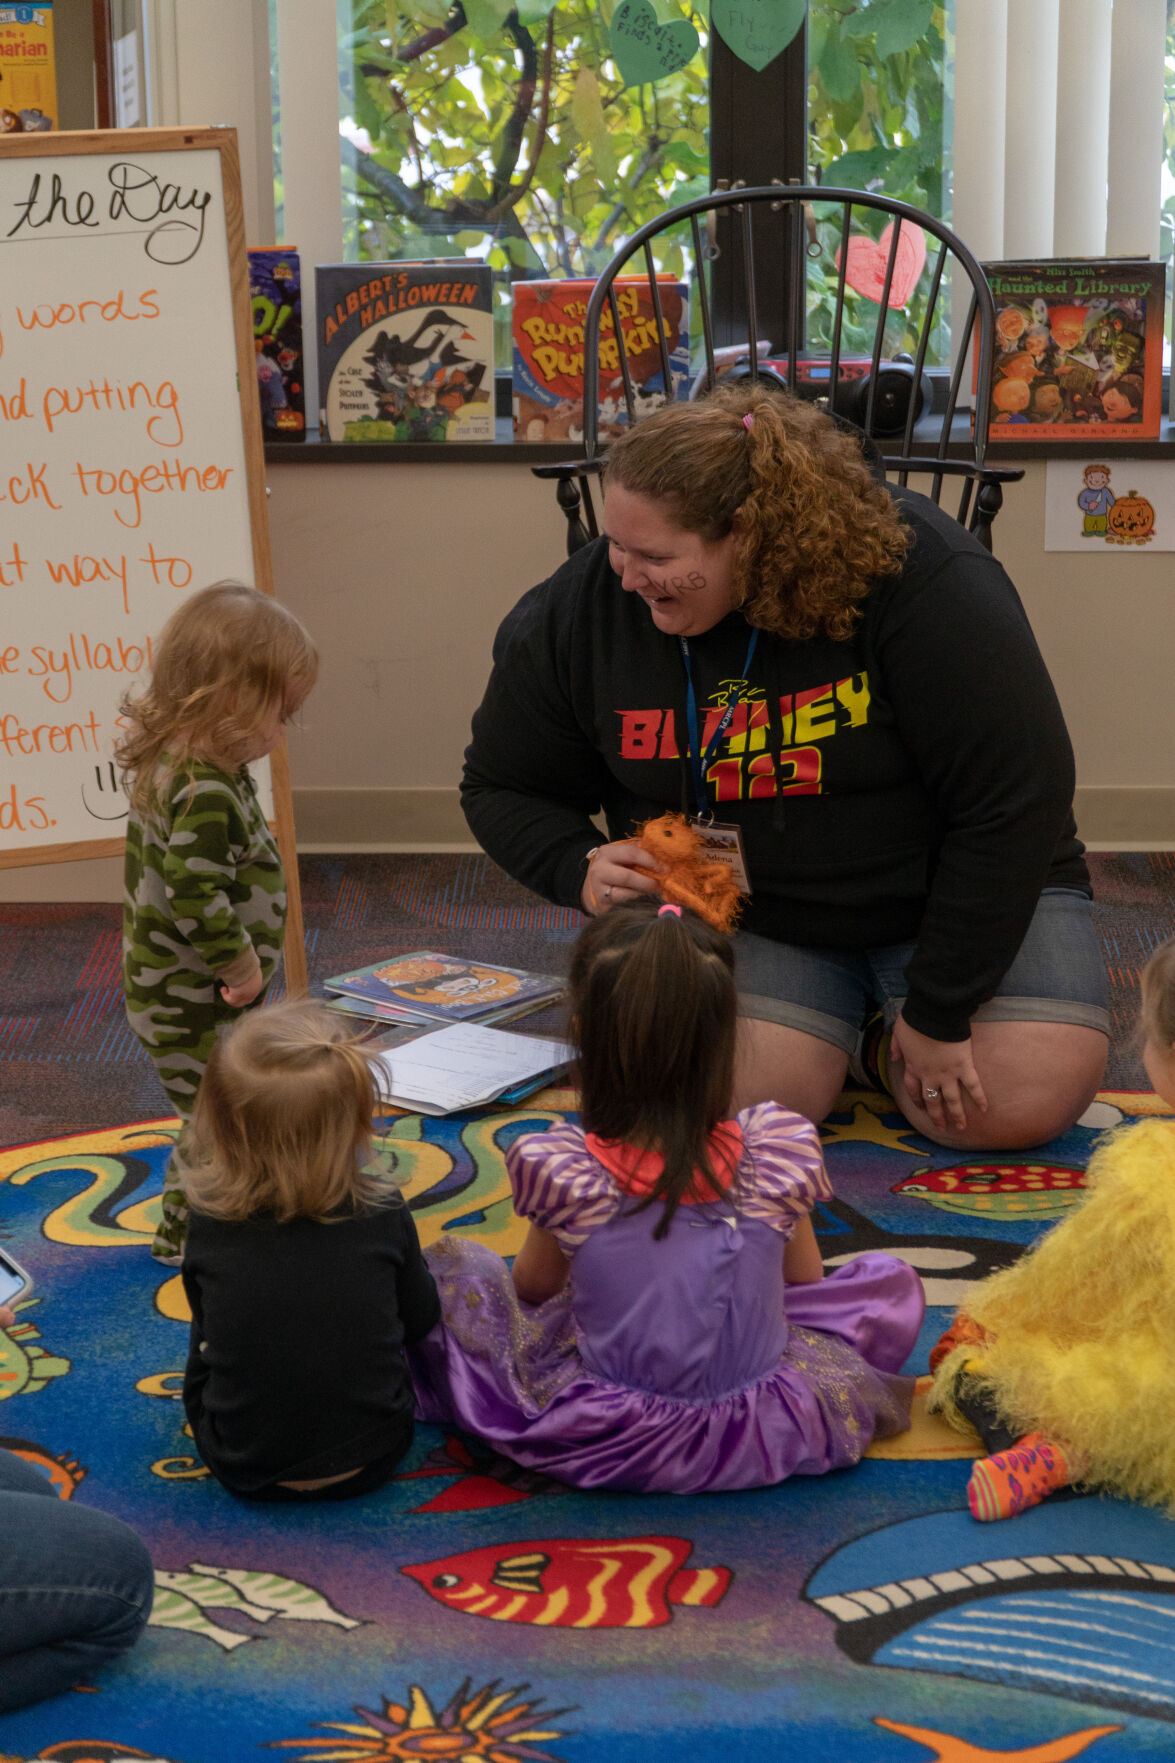 Adena Siefert hosting a story time program in 2019.jpg